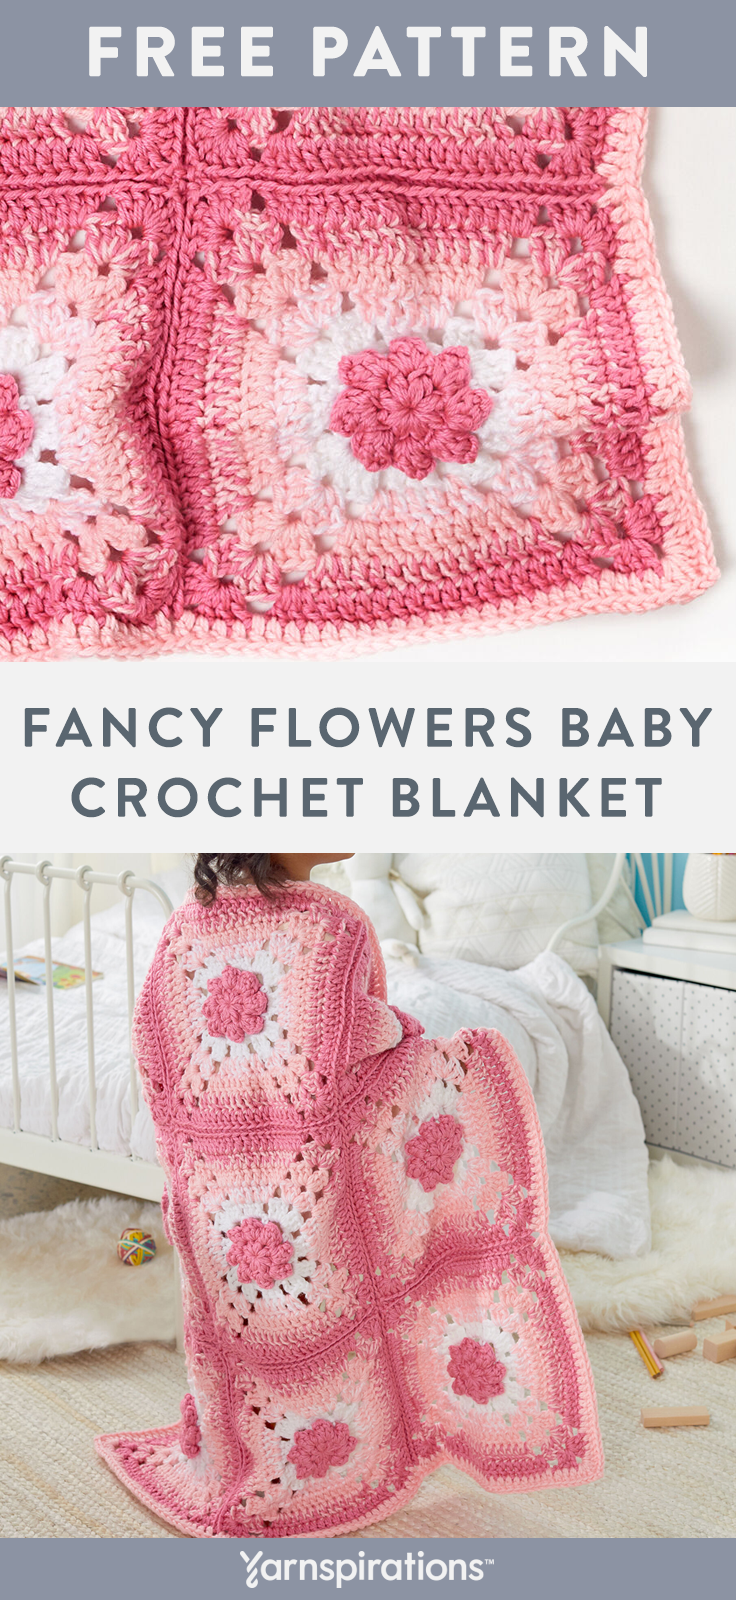 Free Fancy Flowers Baby Blanket crochet pattern using Red Heart Soft Baby Steps yarn. This classic design got an update with this ombre effect! Your favorite flower-loving kiddo will snuggle up under the pretty flowers and have sweet dreams! #yarnspirations #freecrochetpattern #crochetthrow #crochetafghan #crochetblanket #babyblanket #redheartyarn #redheartsoft #babyyarn #springcrochet #springthrow #flowerblanket